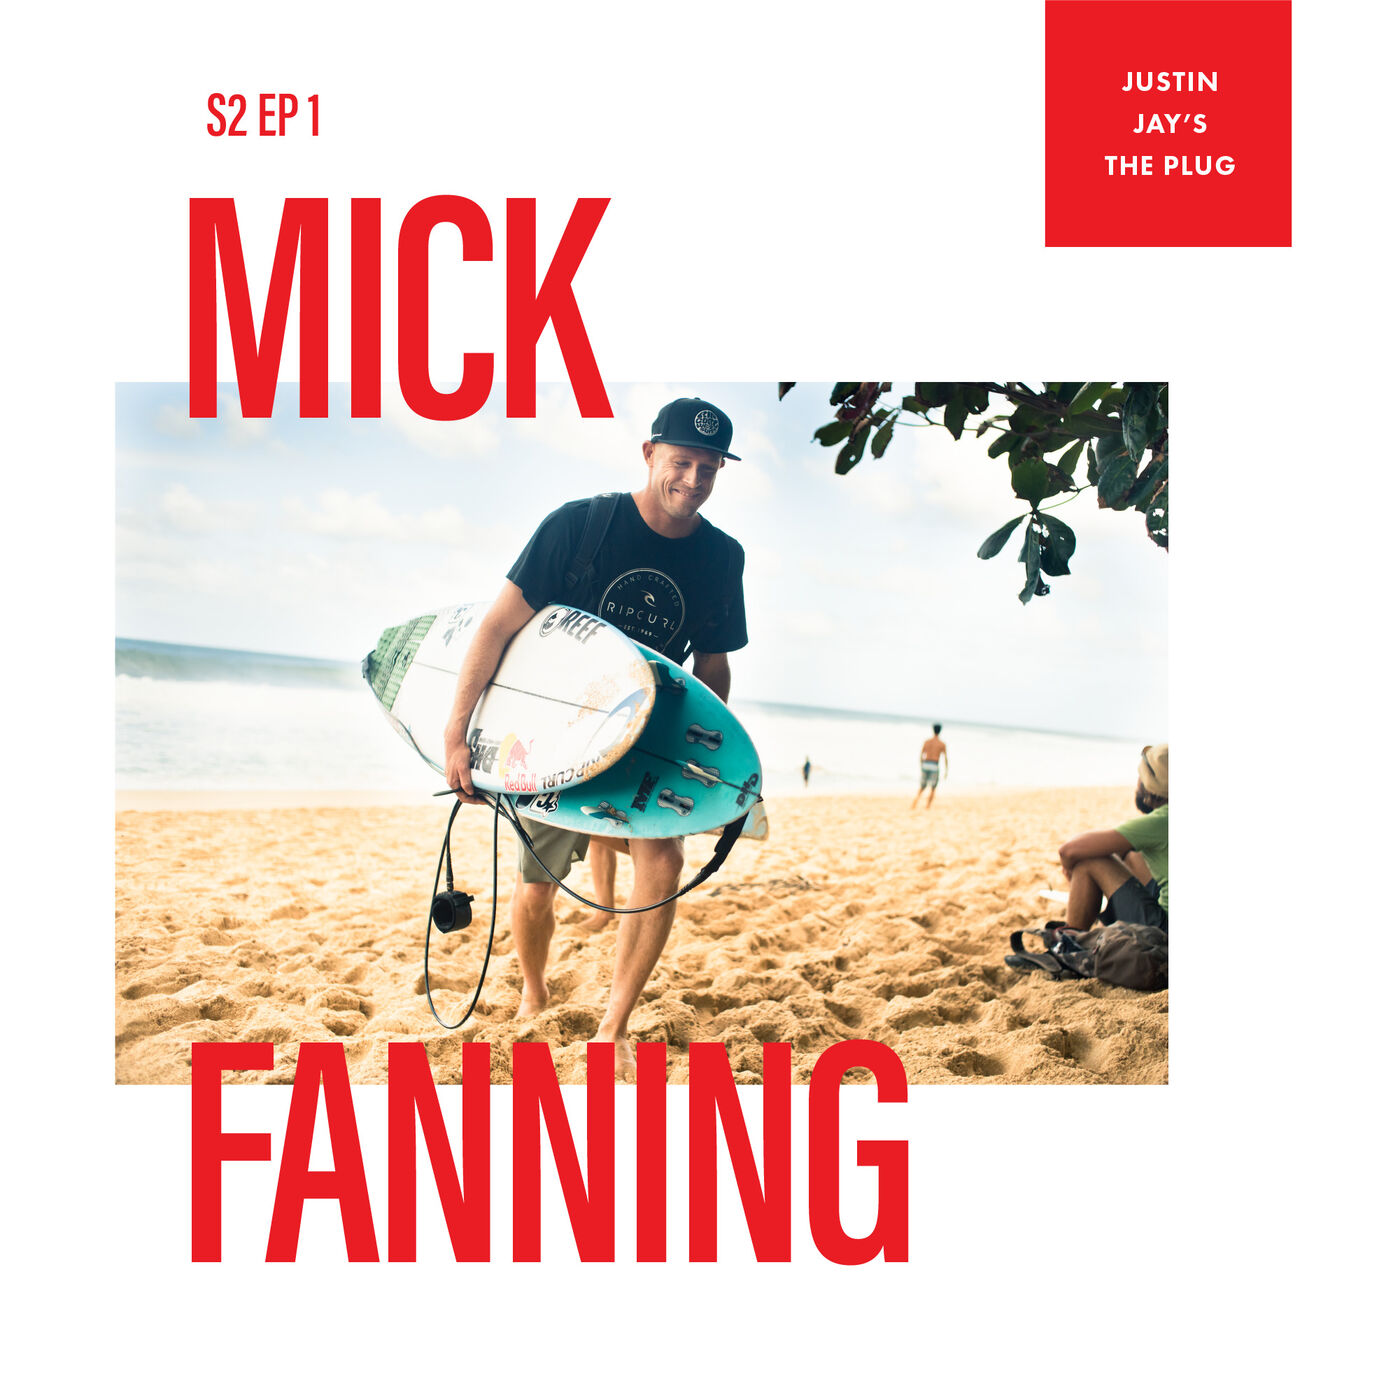 S2 EP1 MICK FANNING